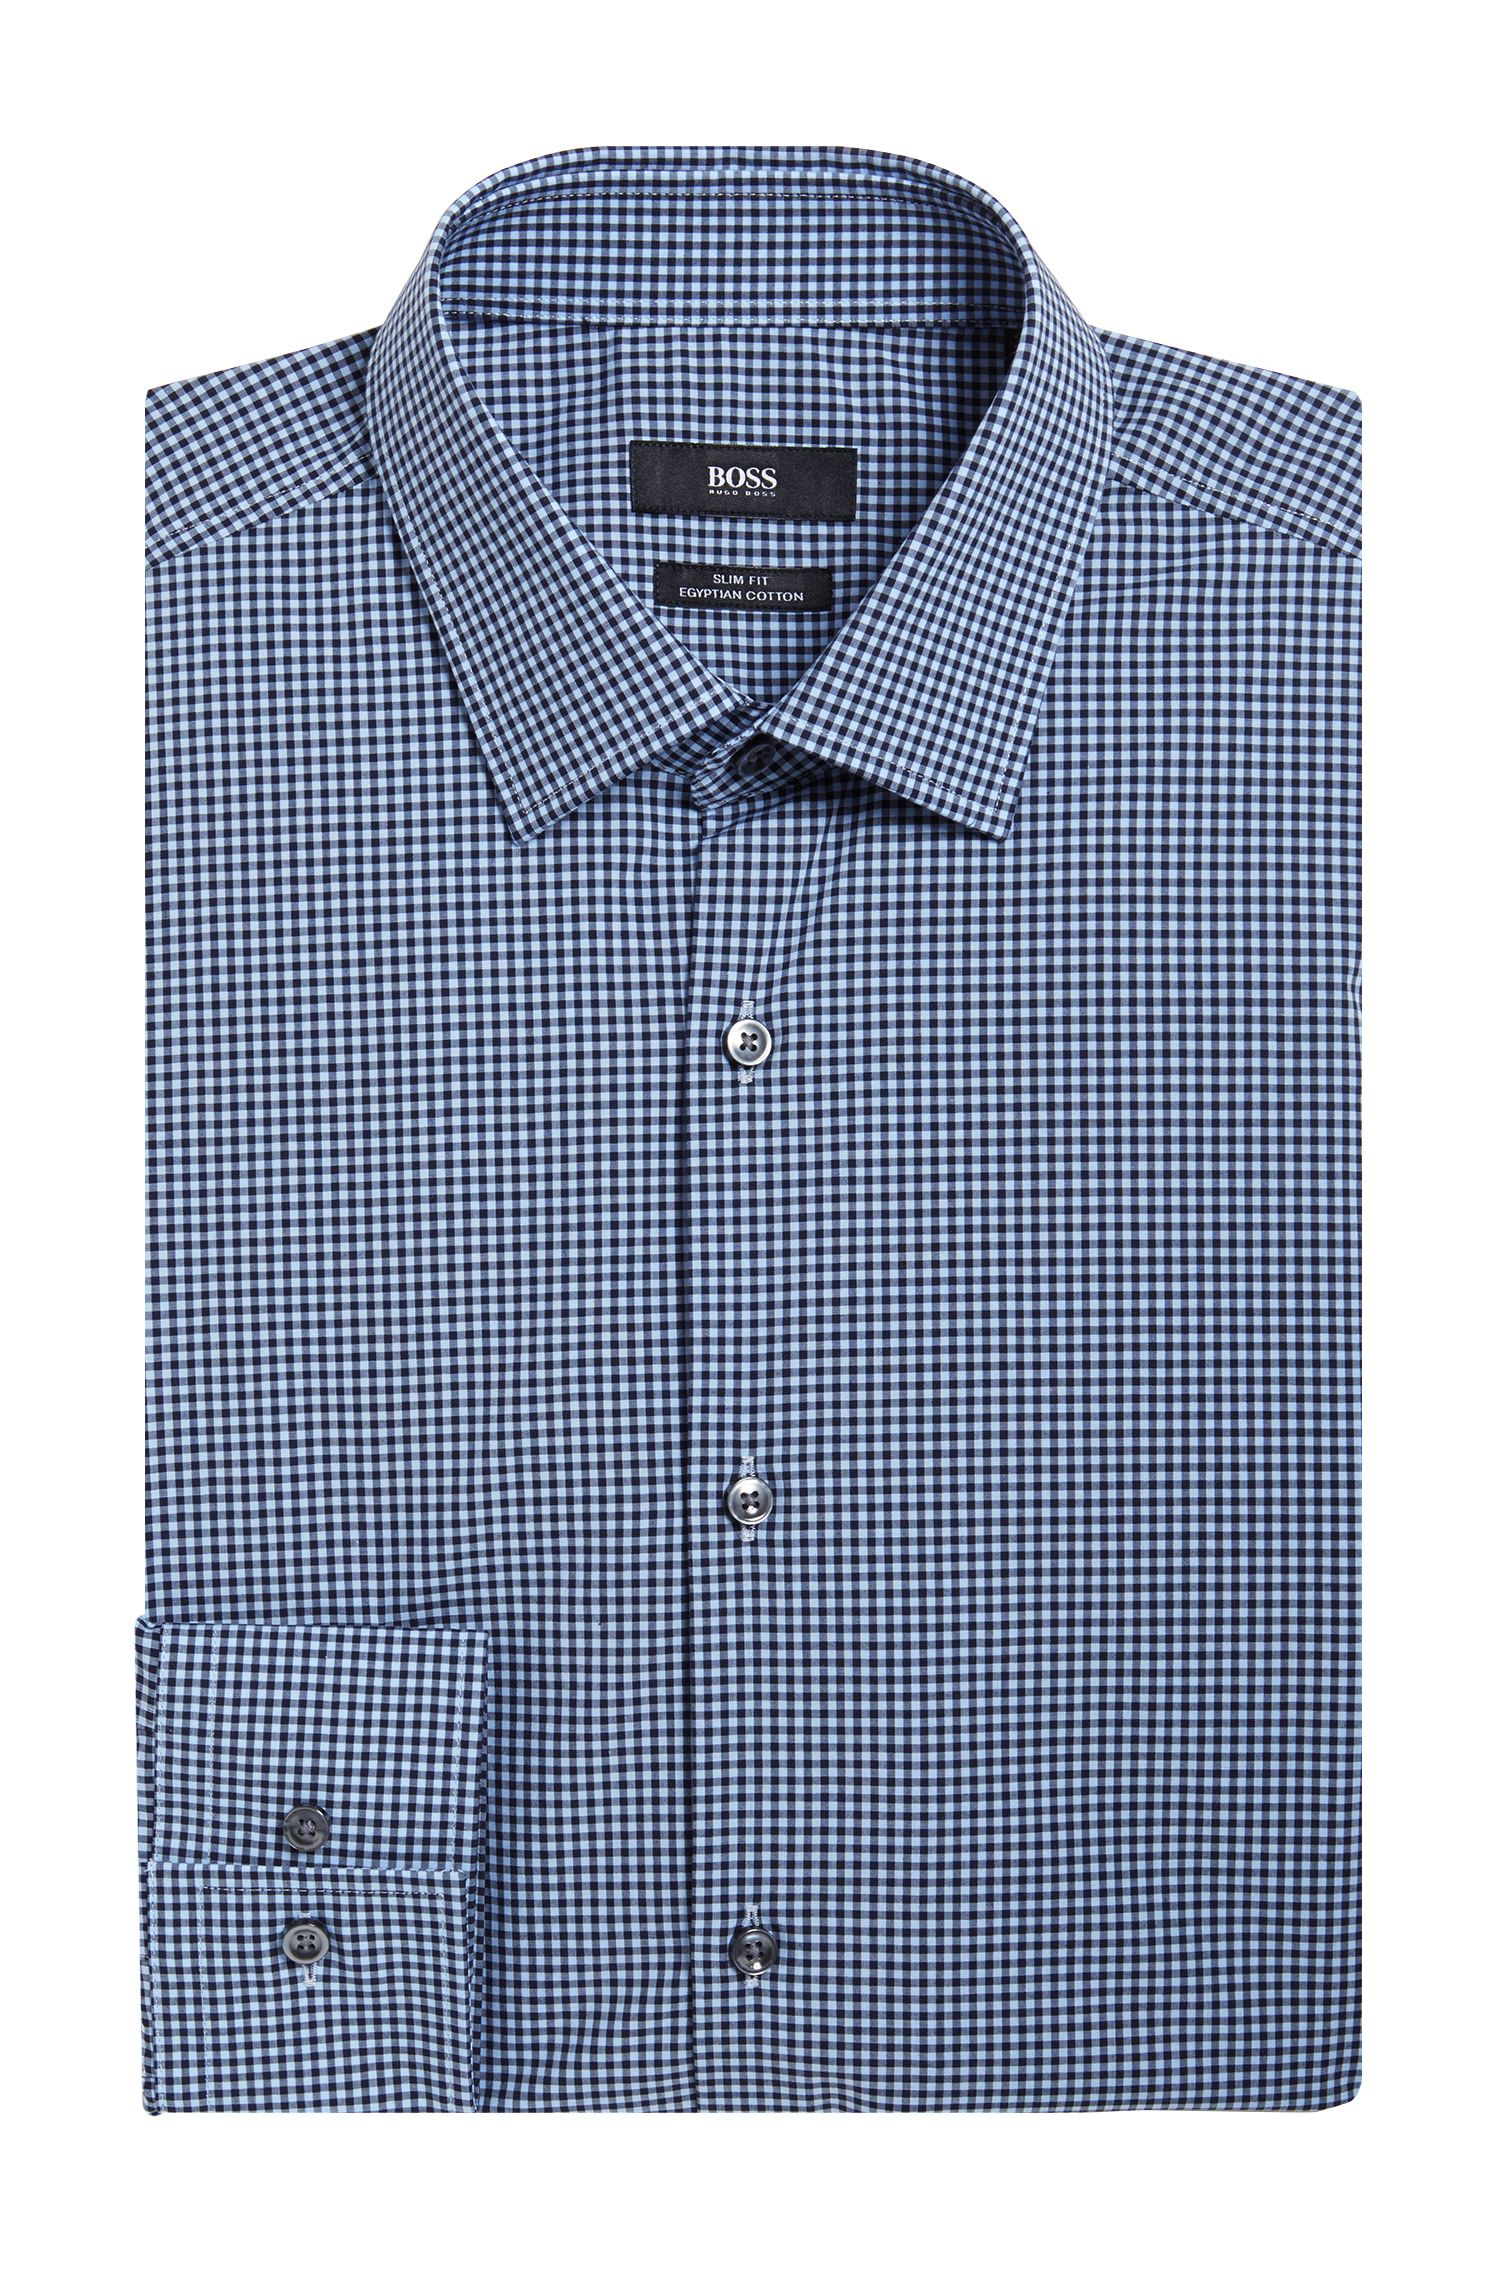 'Jenno' | Slim Fit, Egyptian Cotton Dress Shirt